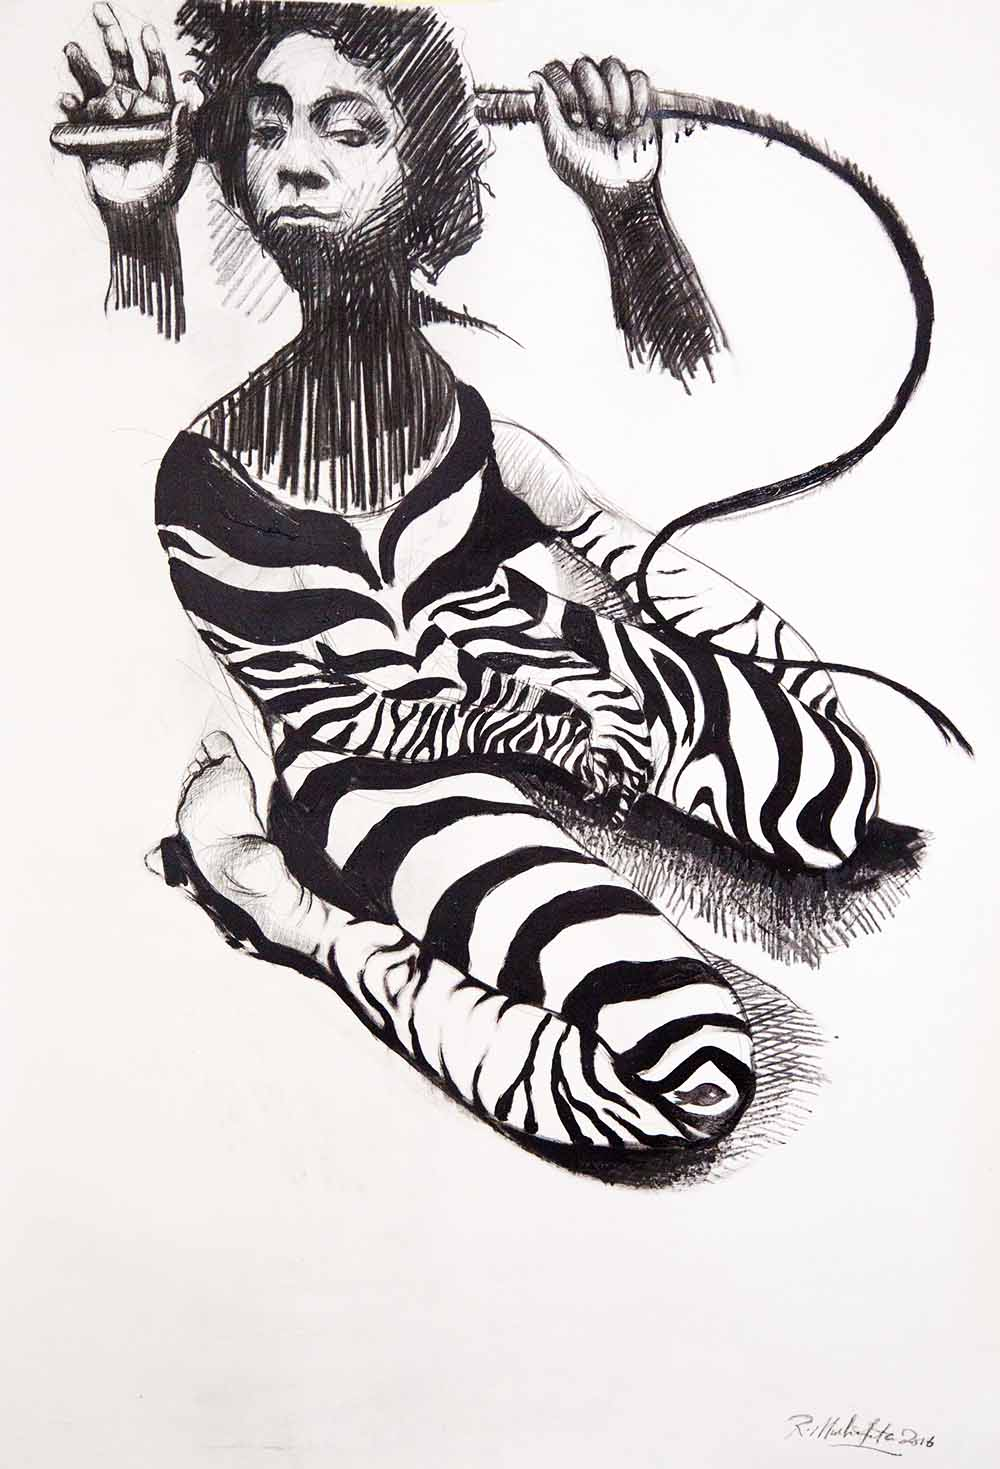 Ronald Muchatuta - Striped - 139.5 x 100 cm